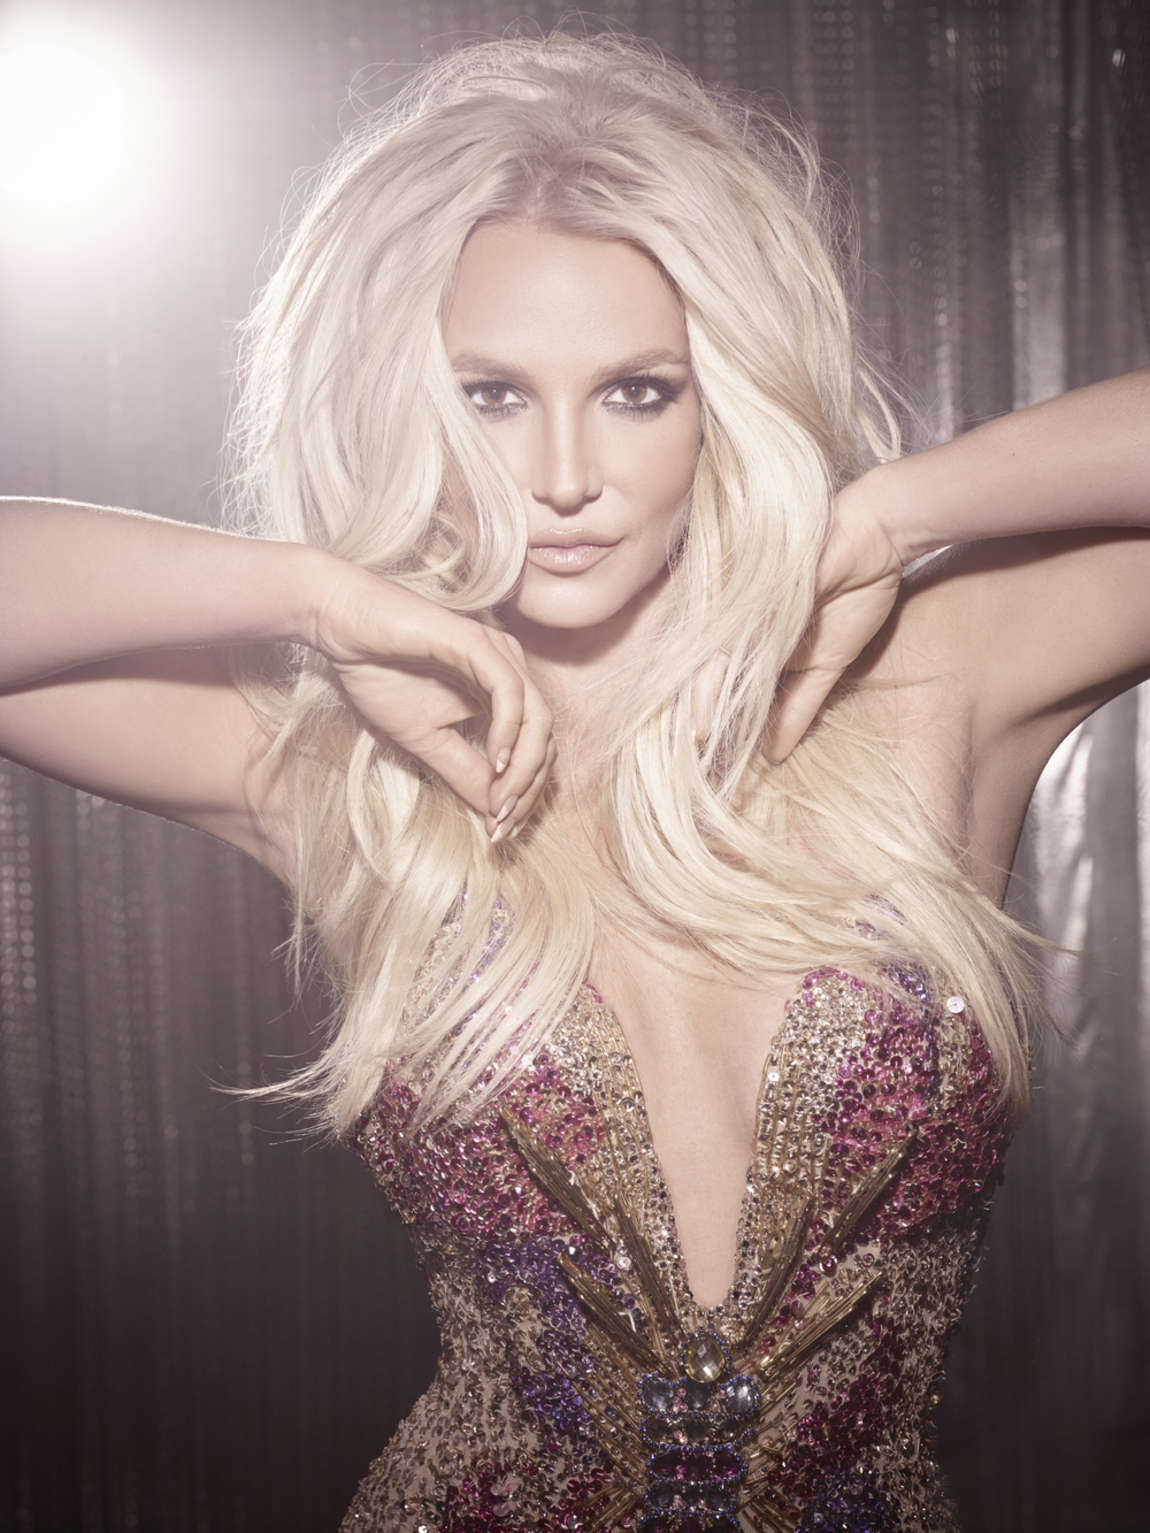 Britney Spears: Piece Of Me Photoshoot 2016 -02 - GotCeleb Britney Spears Vegas